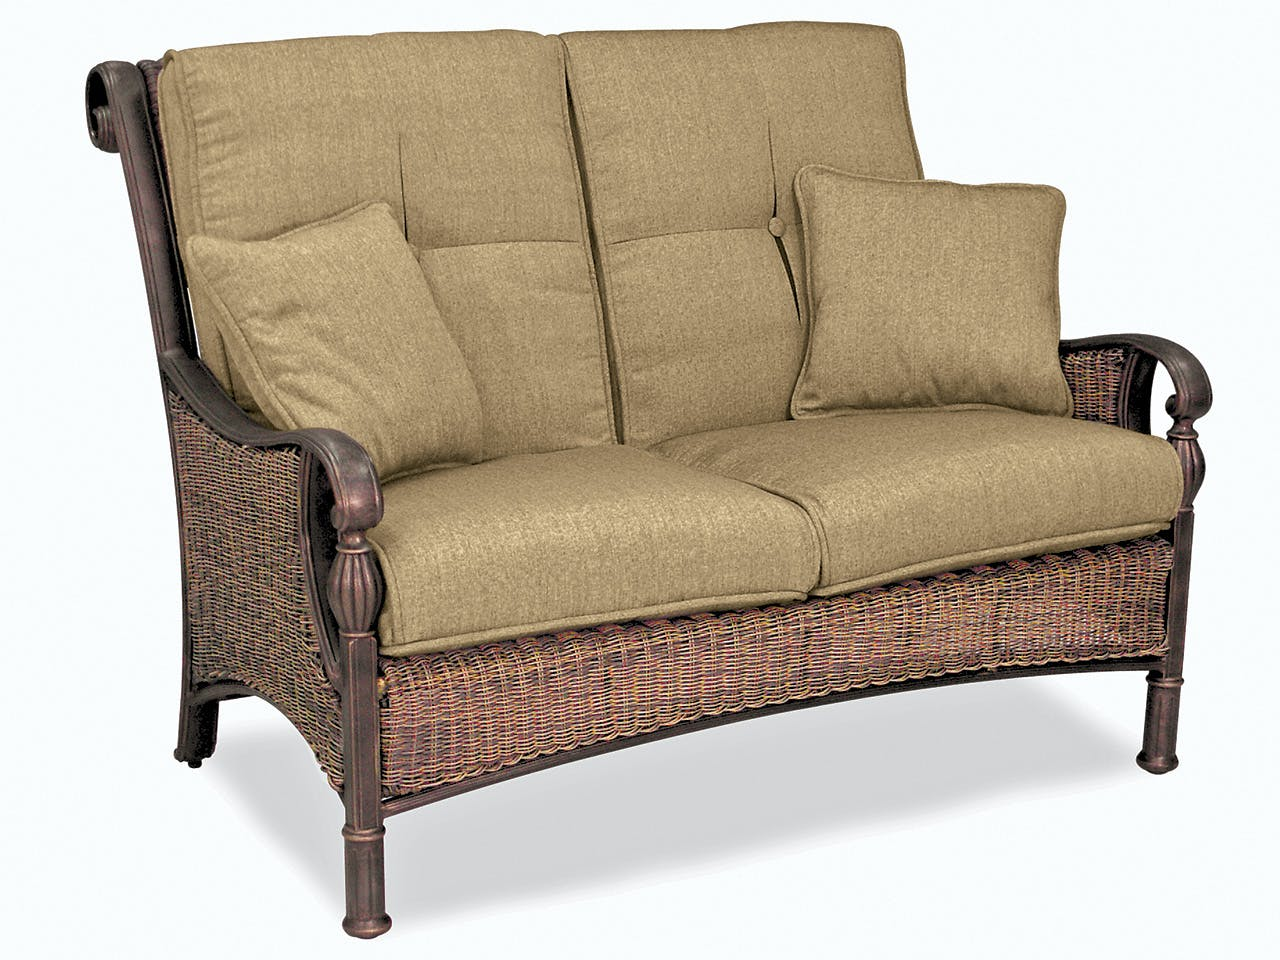 Outdoor Patio Barcelona Black Gold Alumimum And Outdoor Wicker With Pampas Linen Cushion Loveseat